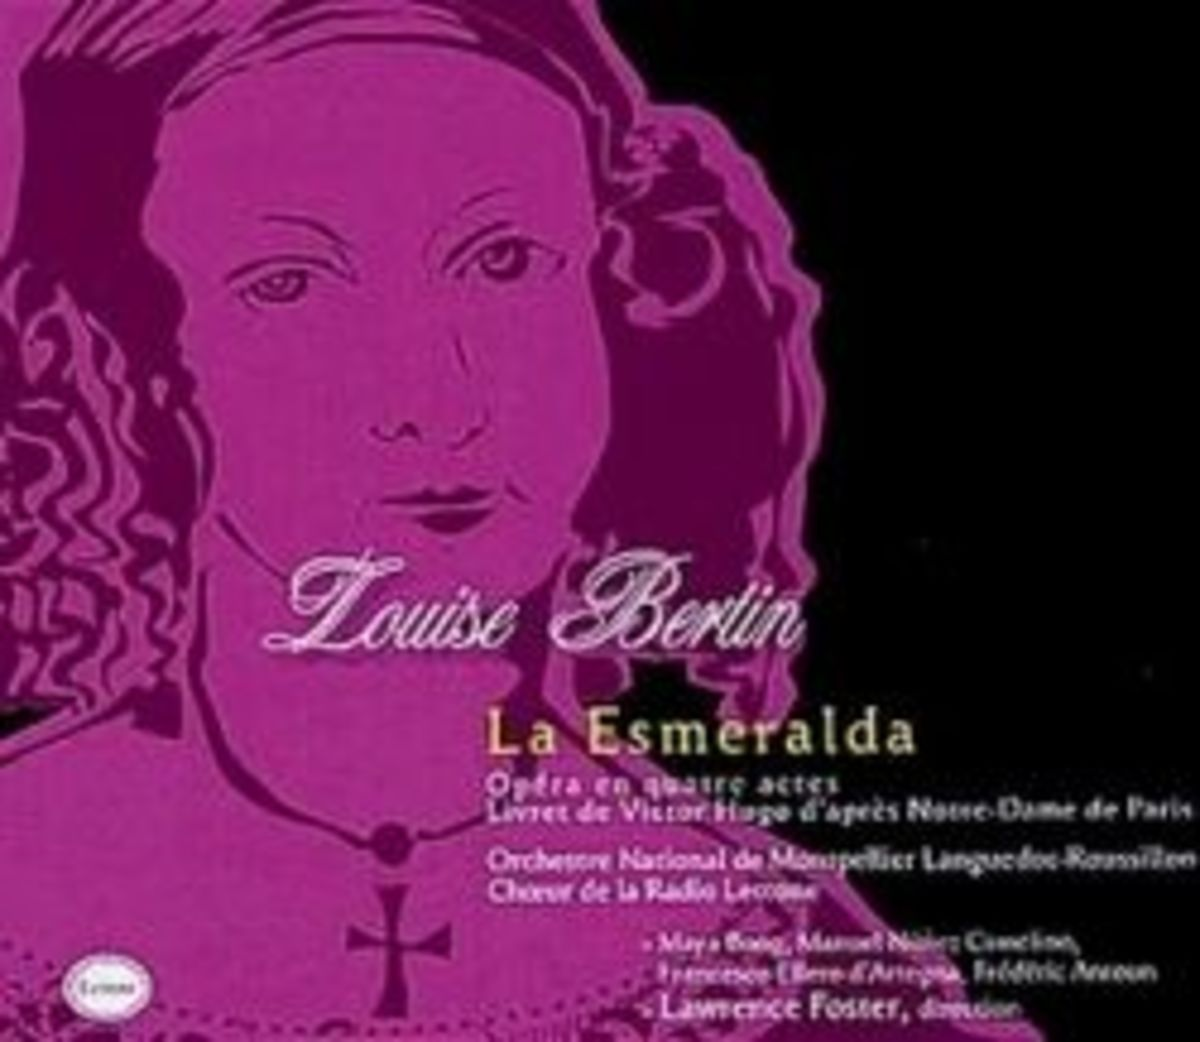 The album cover of La Esmeralda